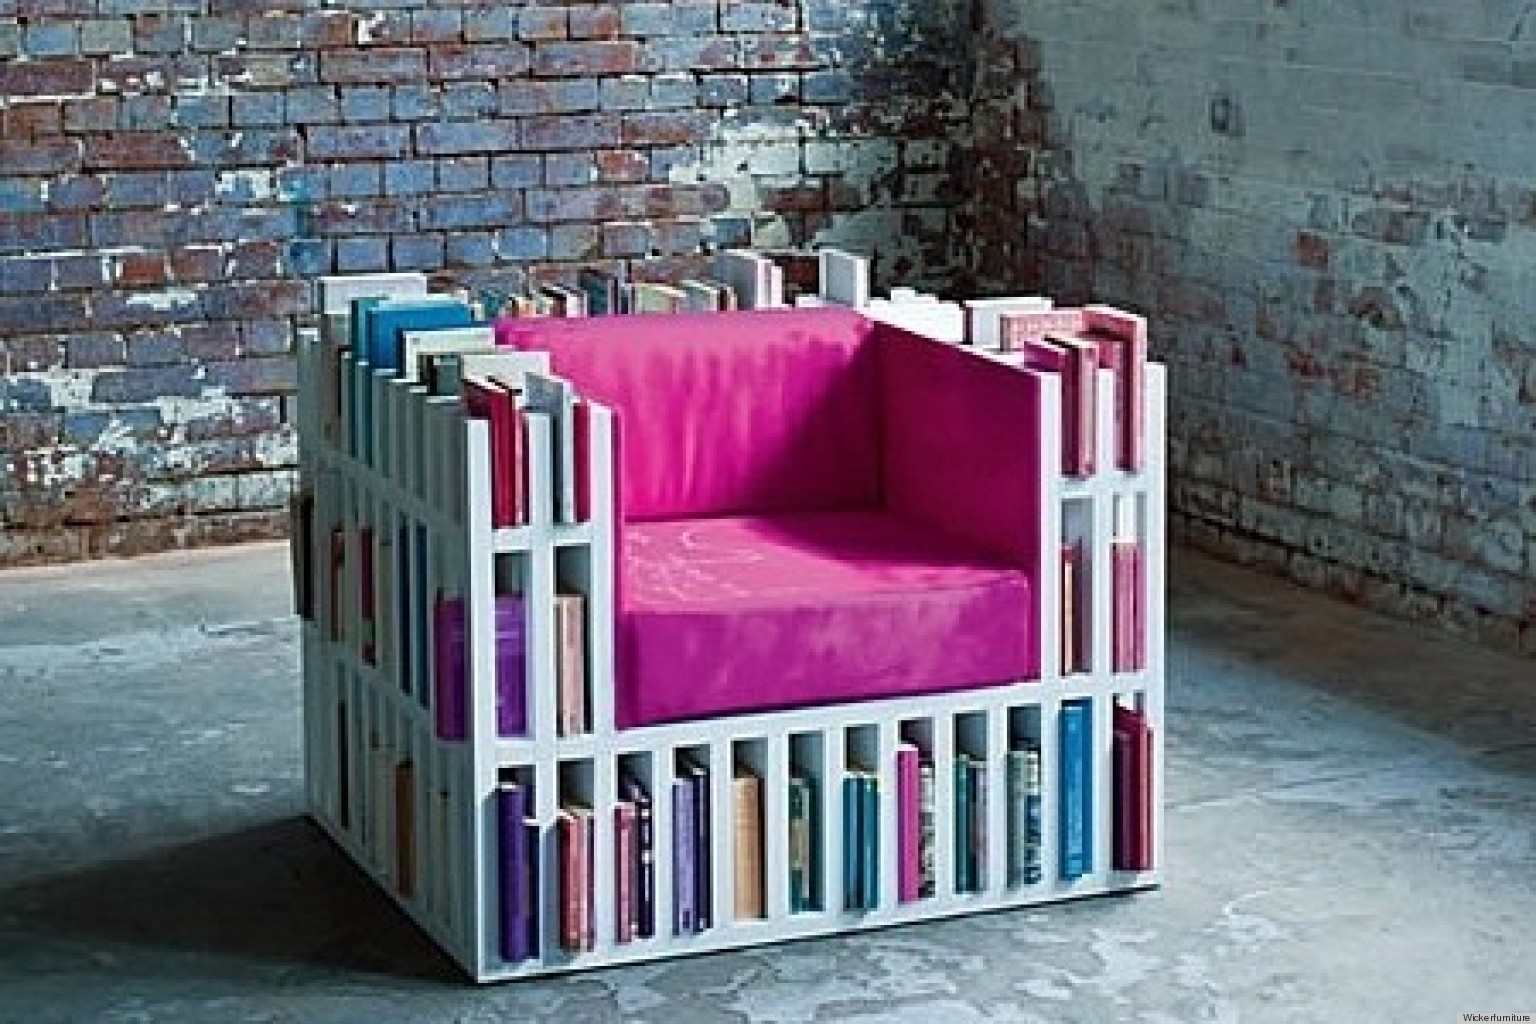 Cool Teen Chairs 9 Cool Chairs That Artfully Inspire Us To Think Outside